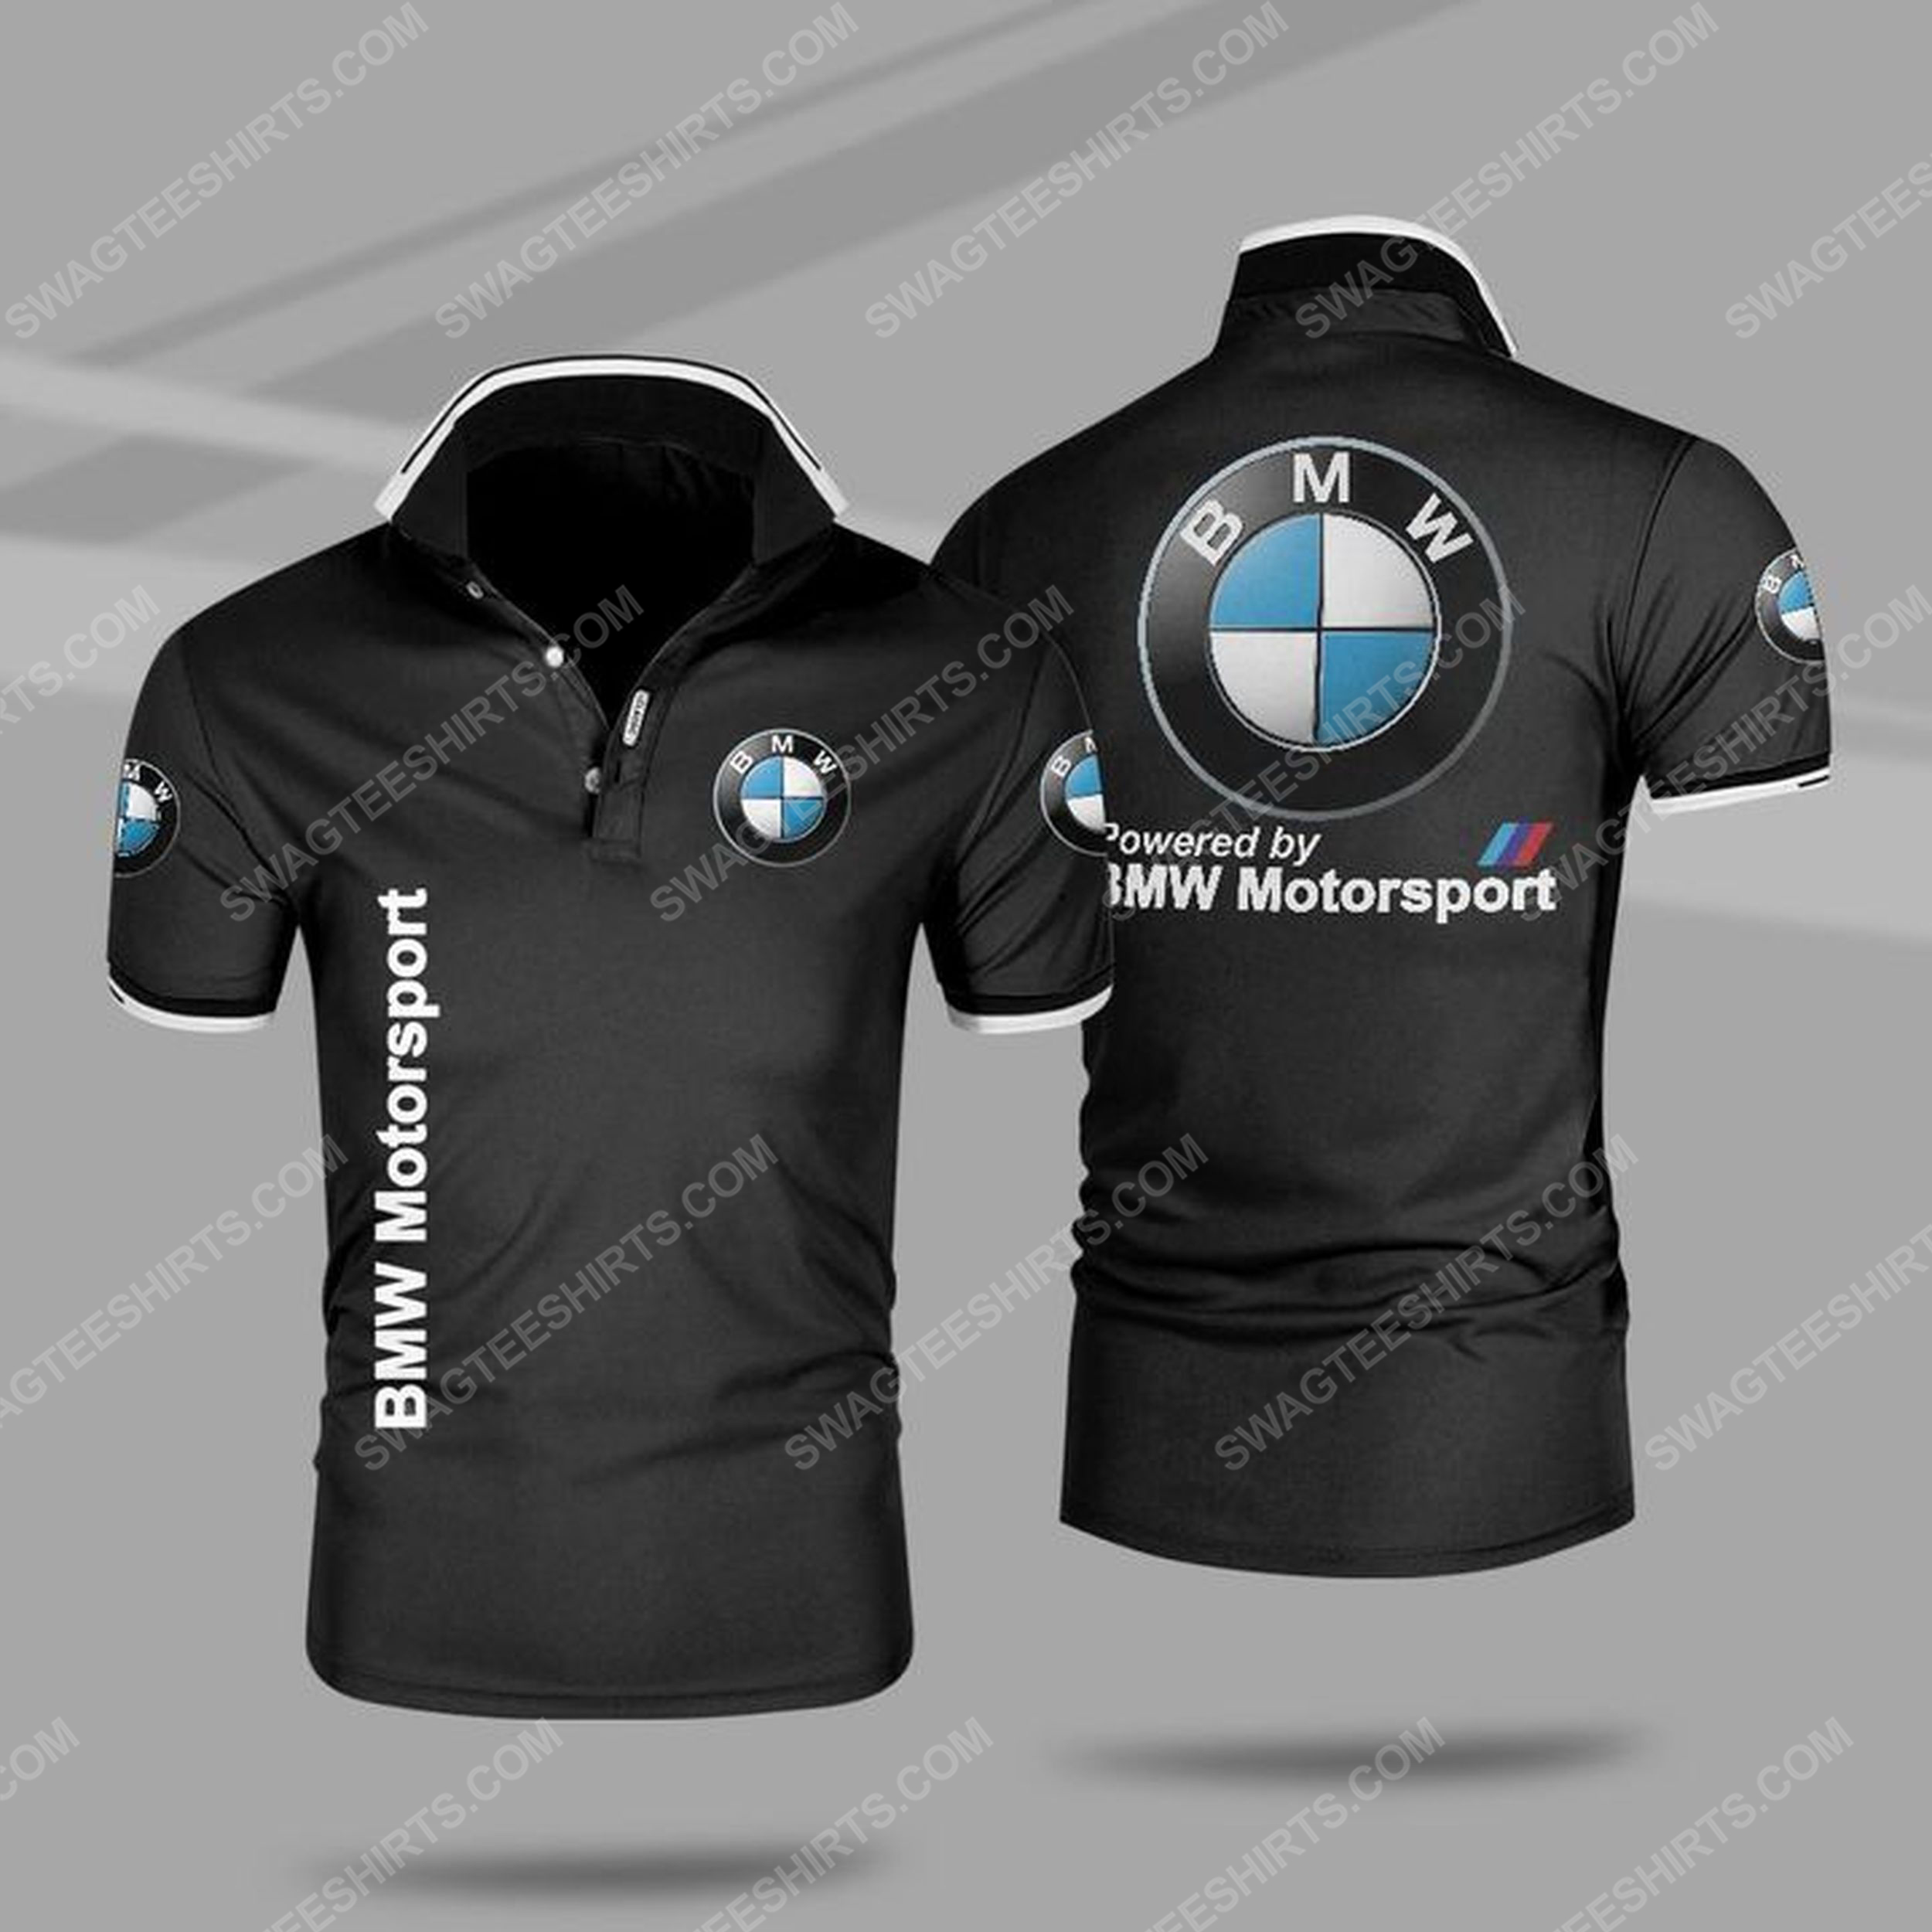 Powered by bmw motorsport all over print polo shirt - black 1